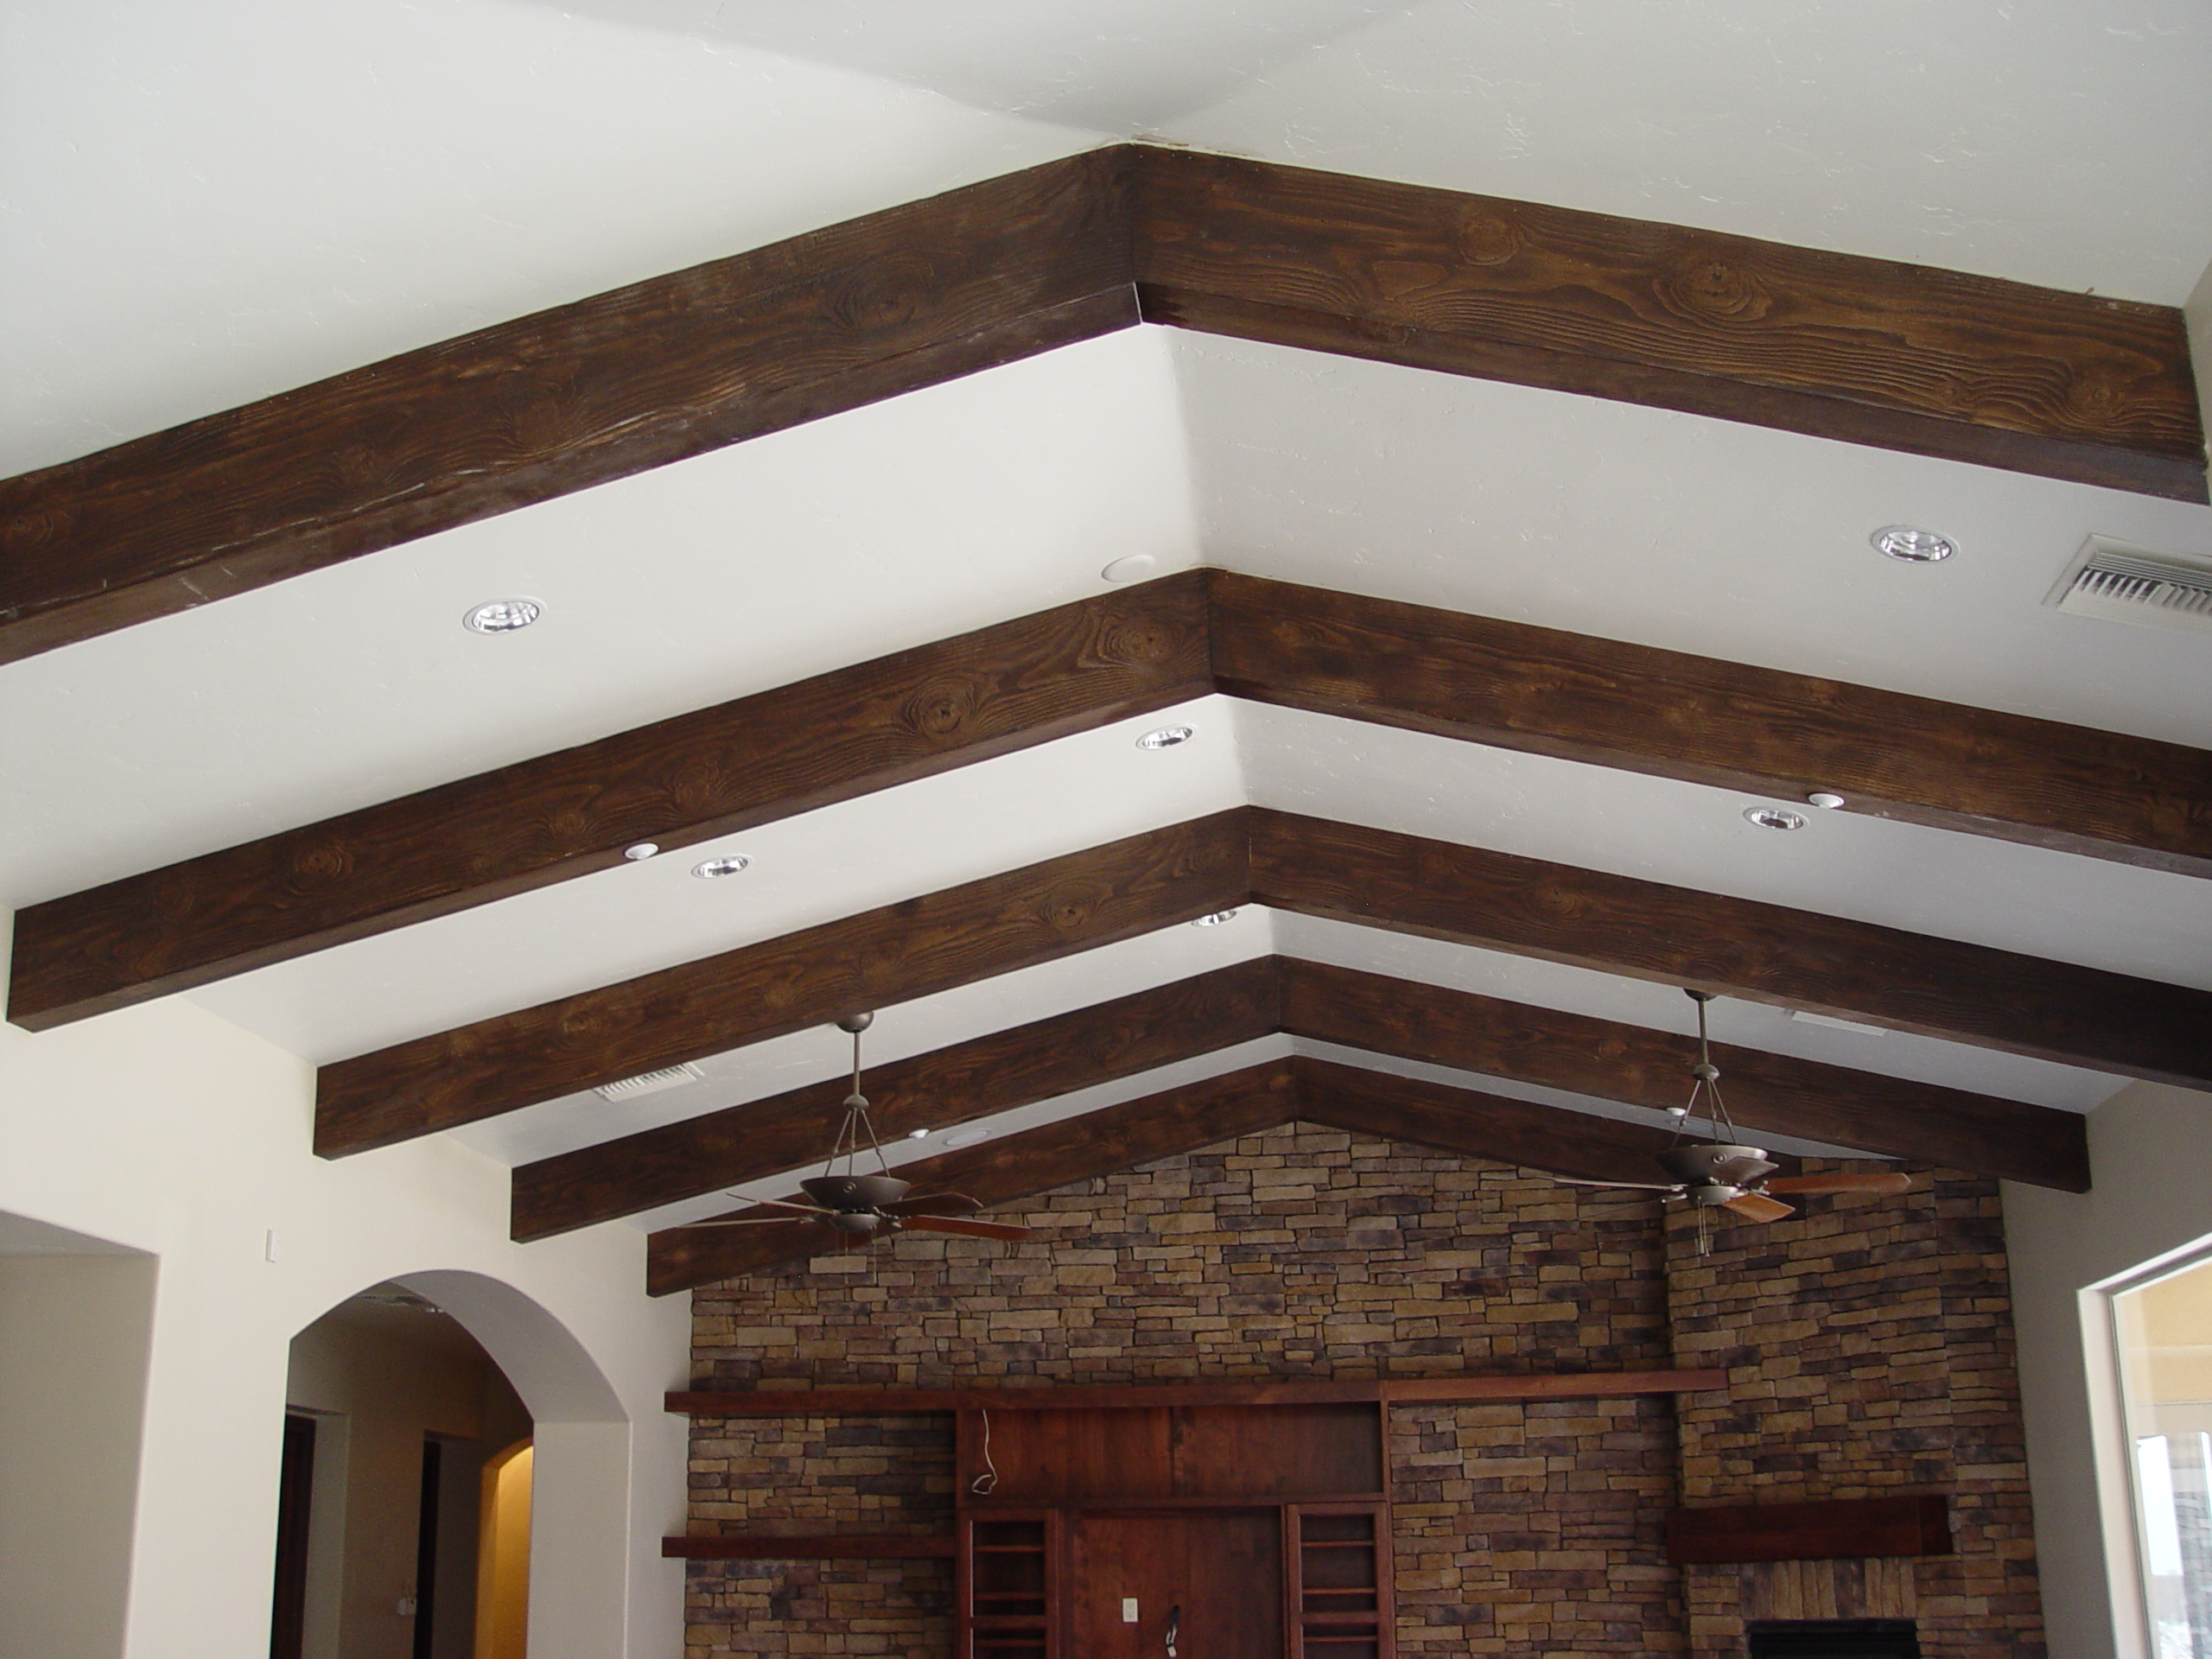 ELEVATE YOUR CEILINGS WITH FAUX WOOD BEAMS Carmellalvpr